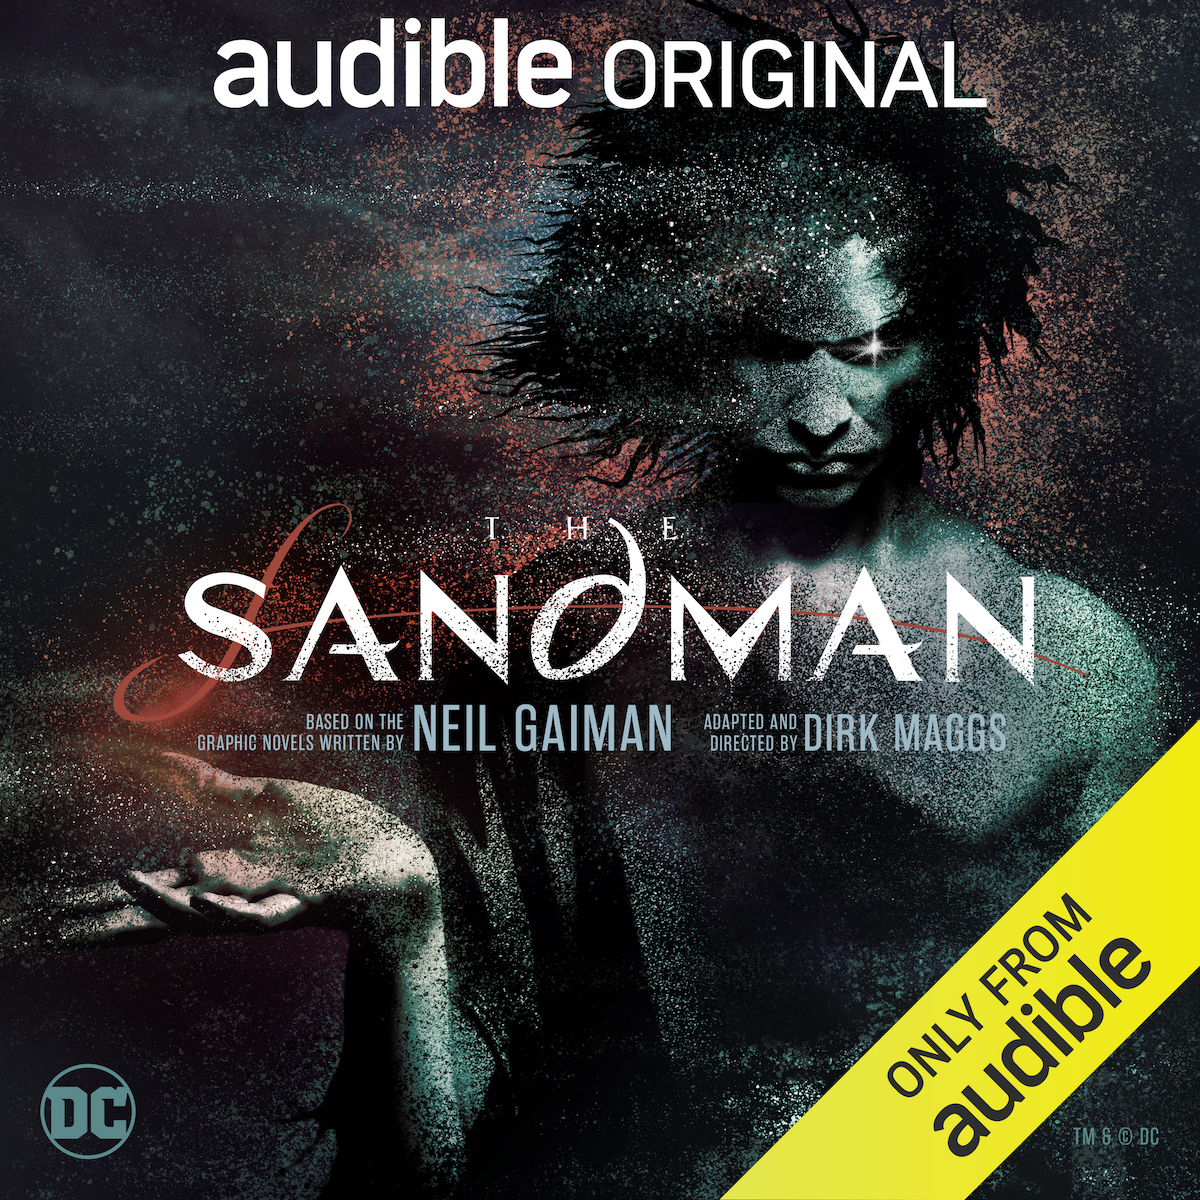 The Sandman Audible Original Review: O sonho chega ao audiolivro 1